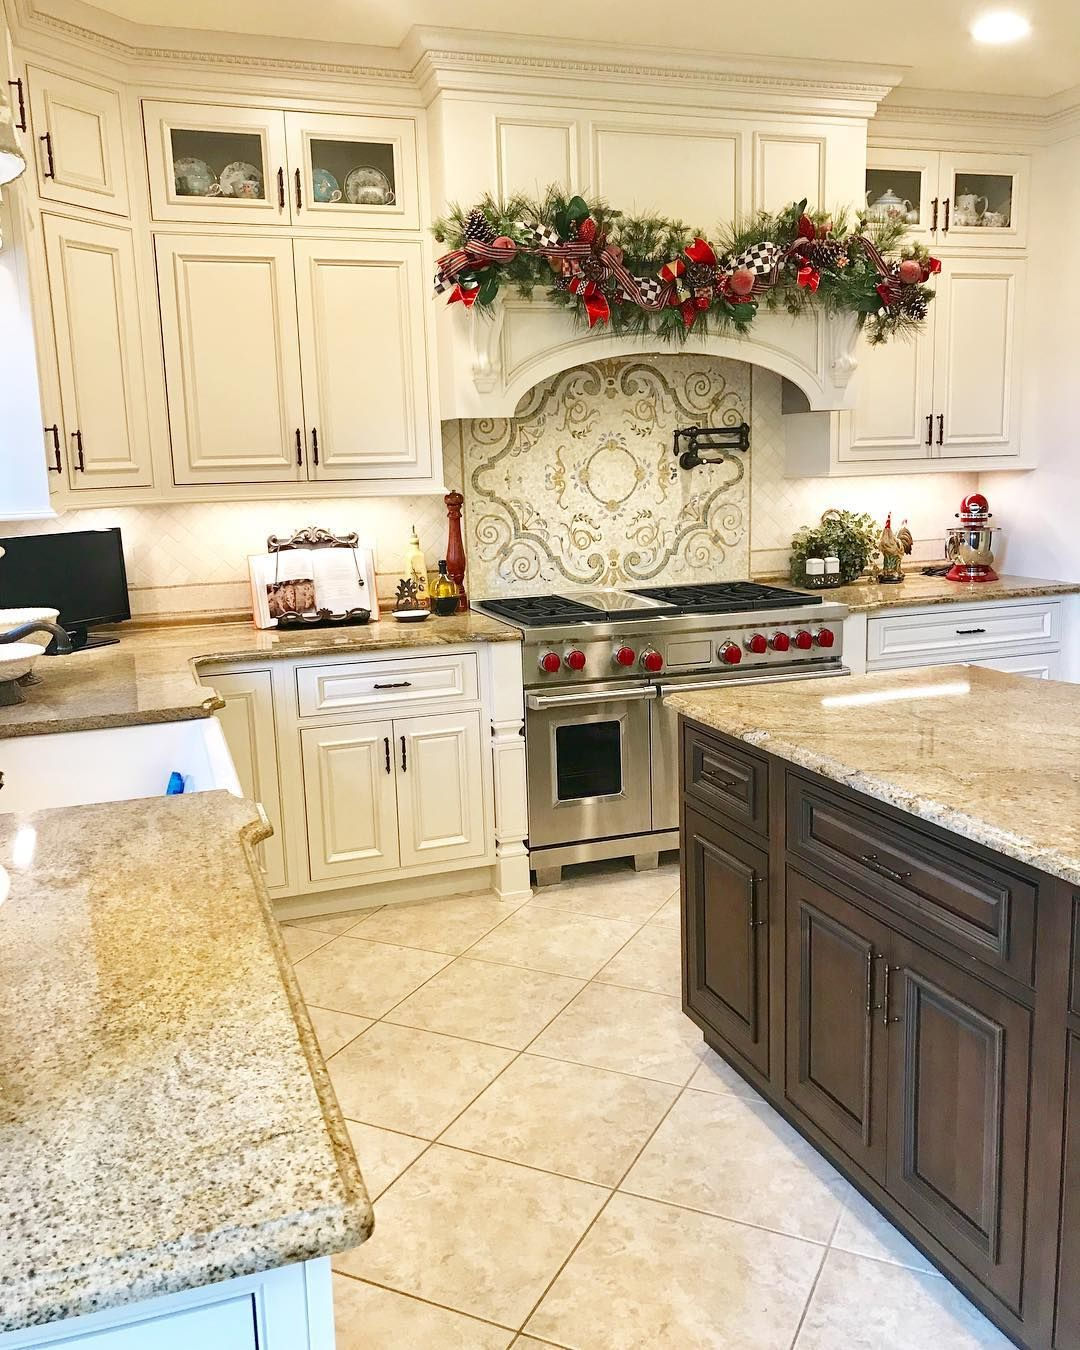 Beautiful Custom Beaded Inset Cabinetry With Applied Molding Raised Panel Doors Solid Maple Kitchen Design Decor Cottage Kitchen Cabinets Small Cottage Kitchen